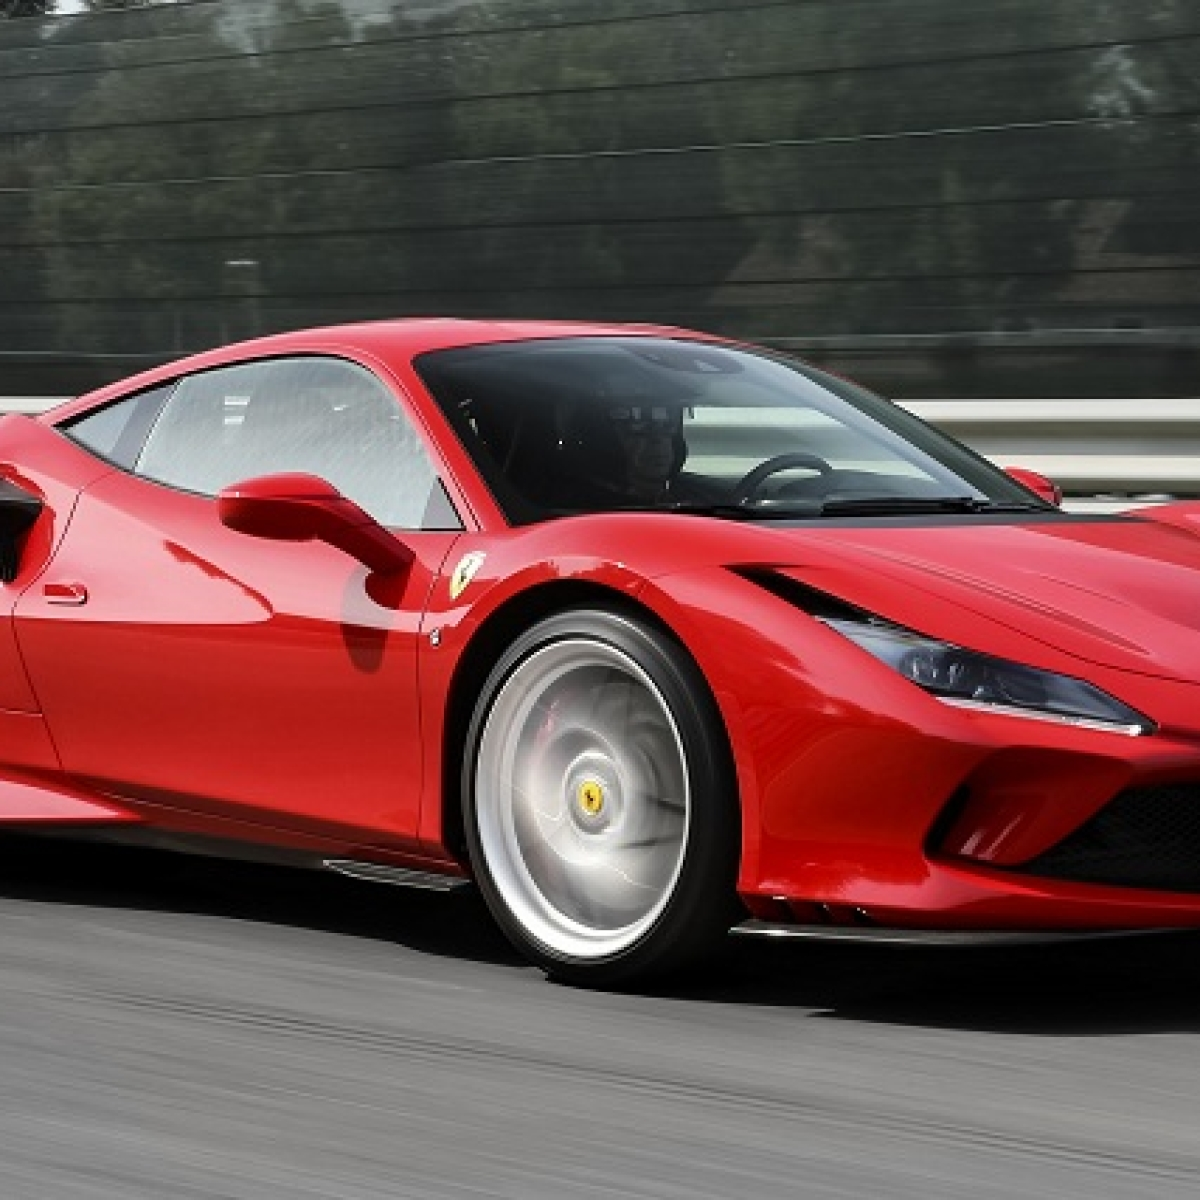 Pre-owned love: From Ferrari to Jaguar... buy luxe cars without creating a hole in your wallet